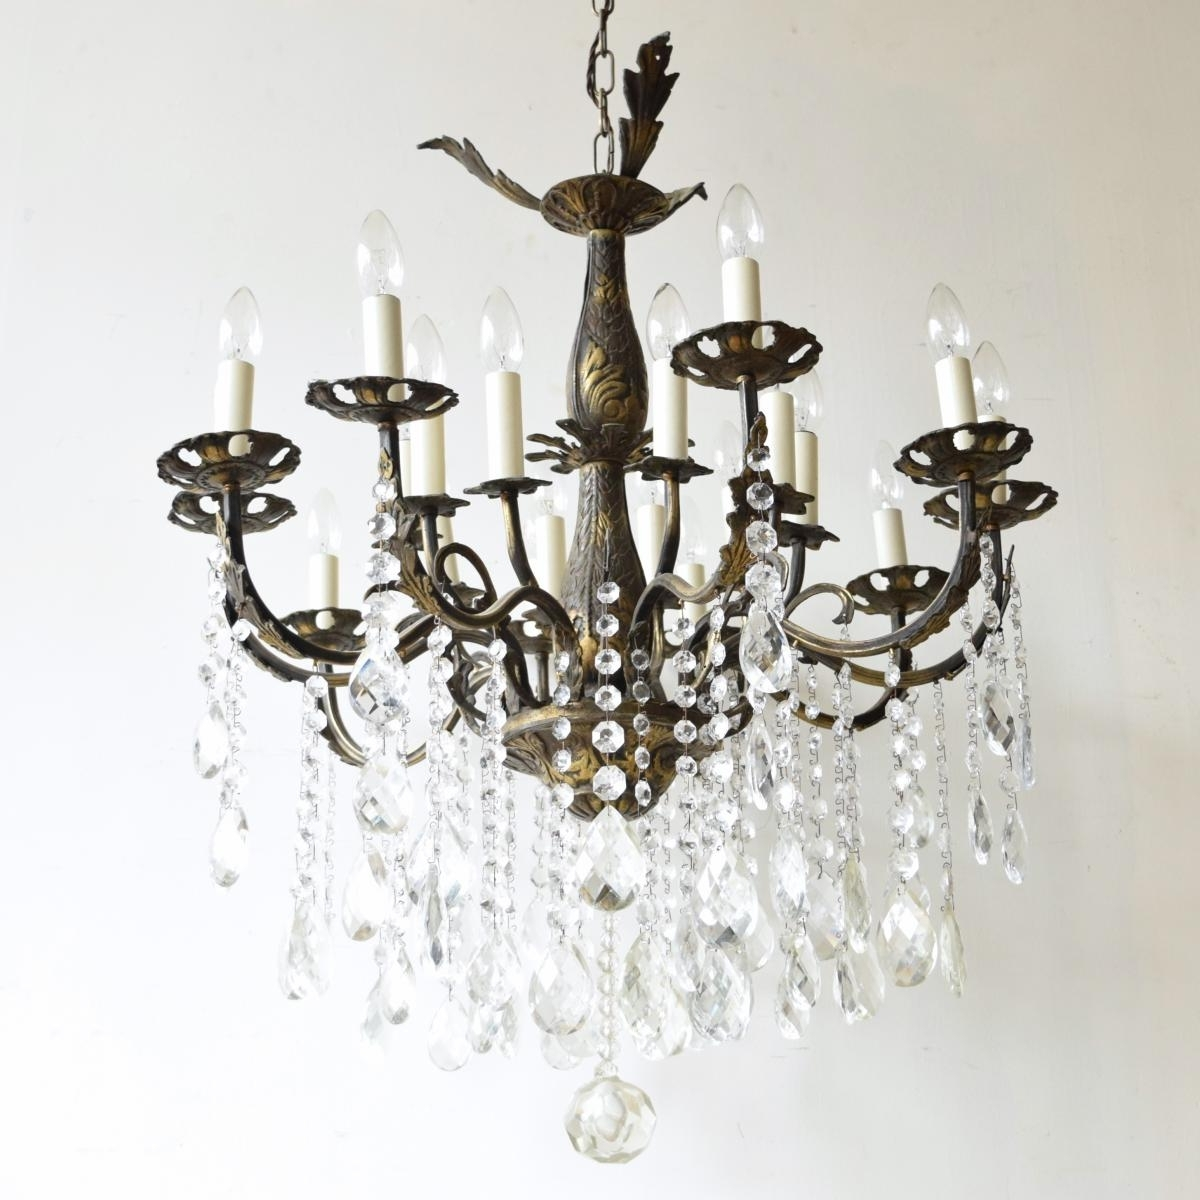 Latest Large Vintage French 16 Light Brass Chandelier For Sale At Pamono Pertaining To Large Brass Chandelier (View 8 of 20)